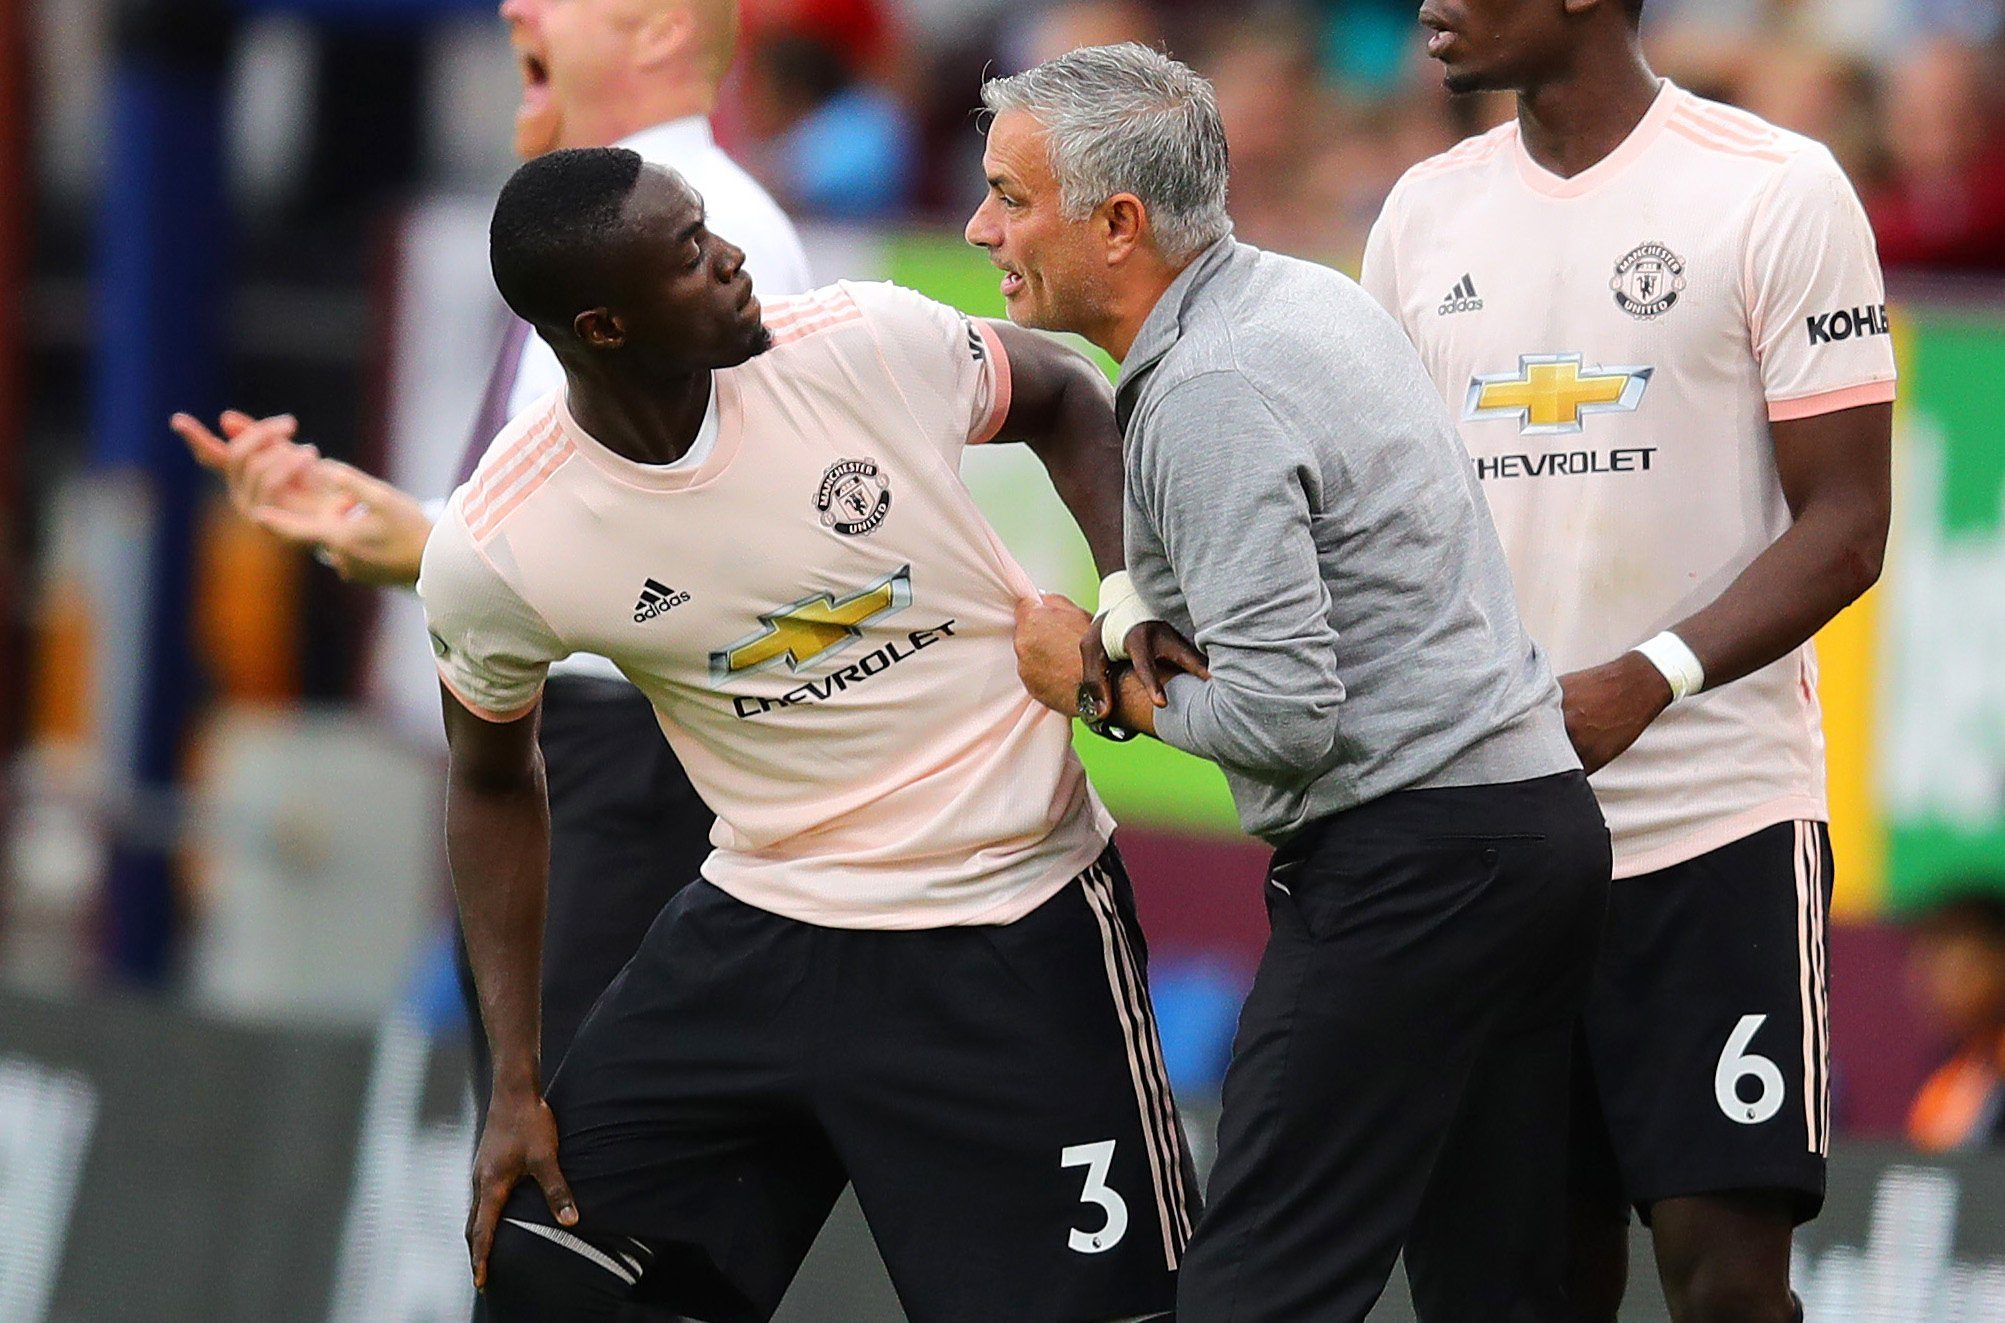 BURNLEY, ENGLAND - SEPTEMBER 02: Manchester United manager Jose Mourinho makes a point to Eric Bailly before he enters the field as a substitute during the Premier League match between Burnley FC and Manchester United at Turf Moor on September 2, 2018 in Burnley, United Kingdom. (Photo by Chris Brunskill/Fantasista/Getty Images)